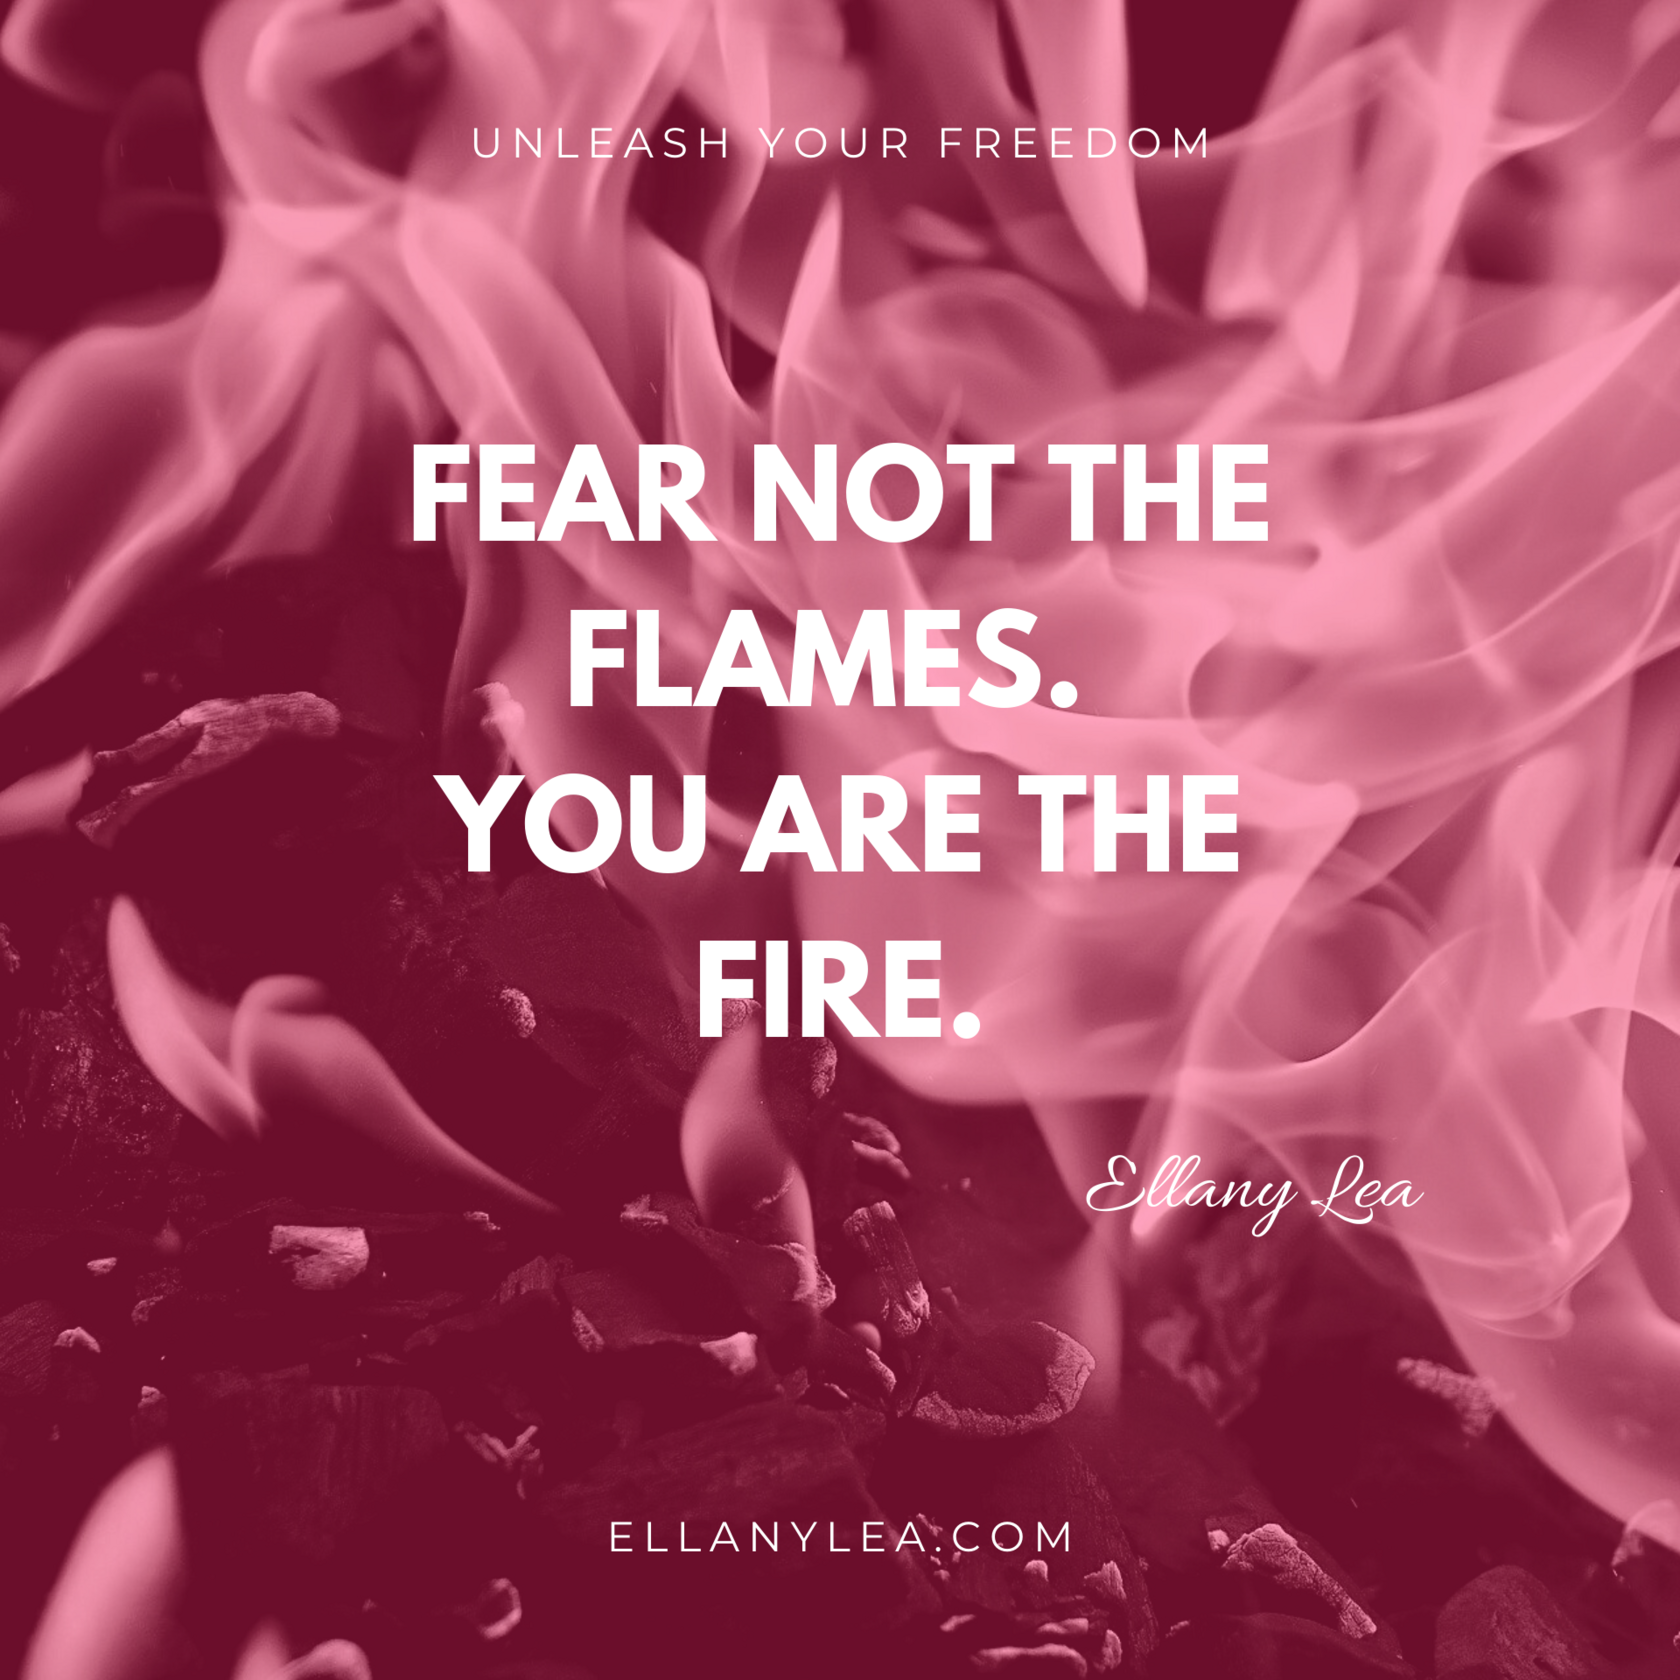 quotes - fear not flames fire